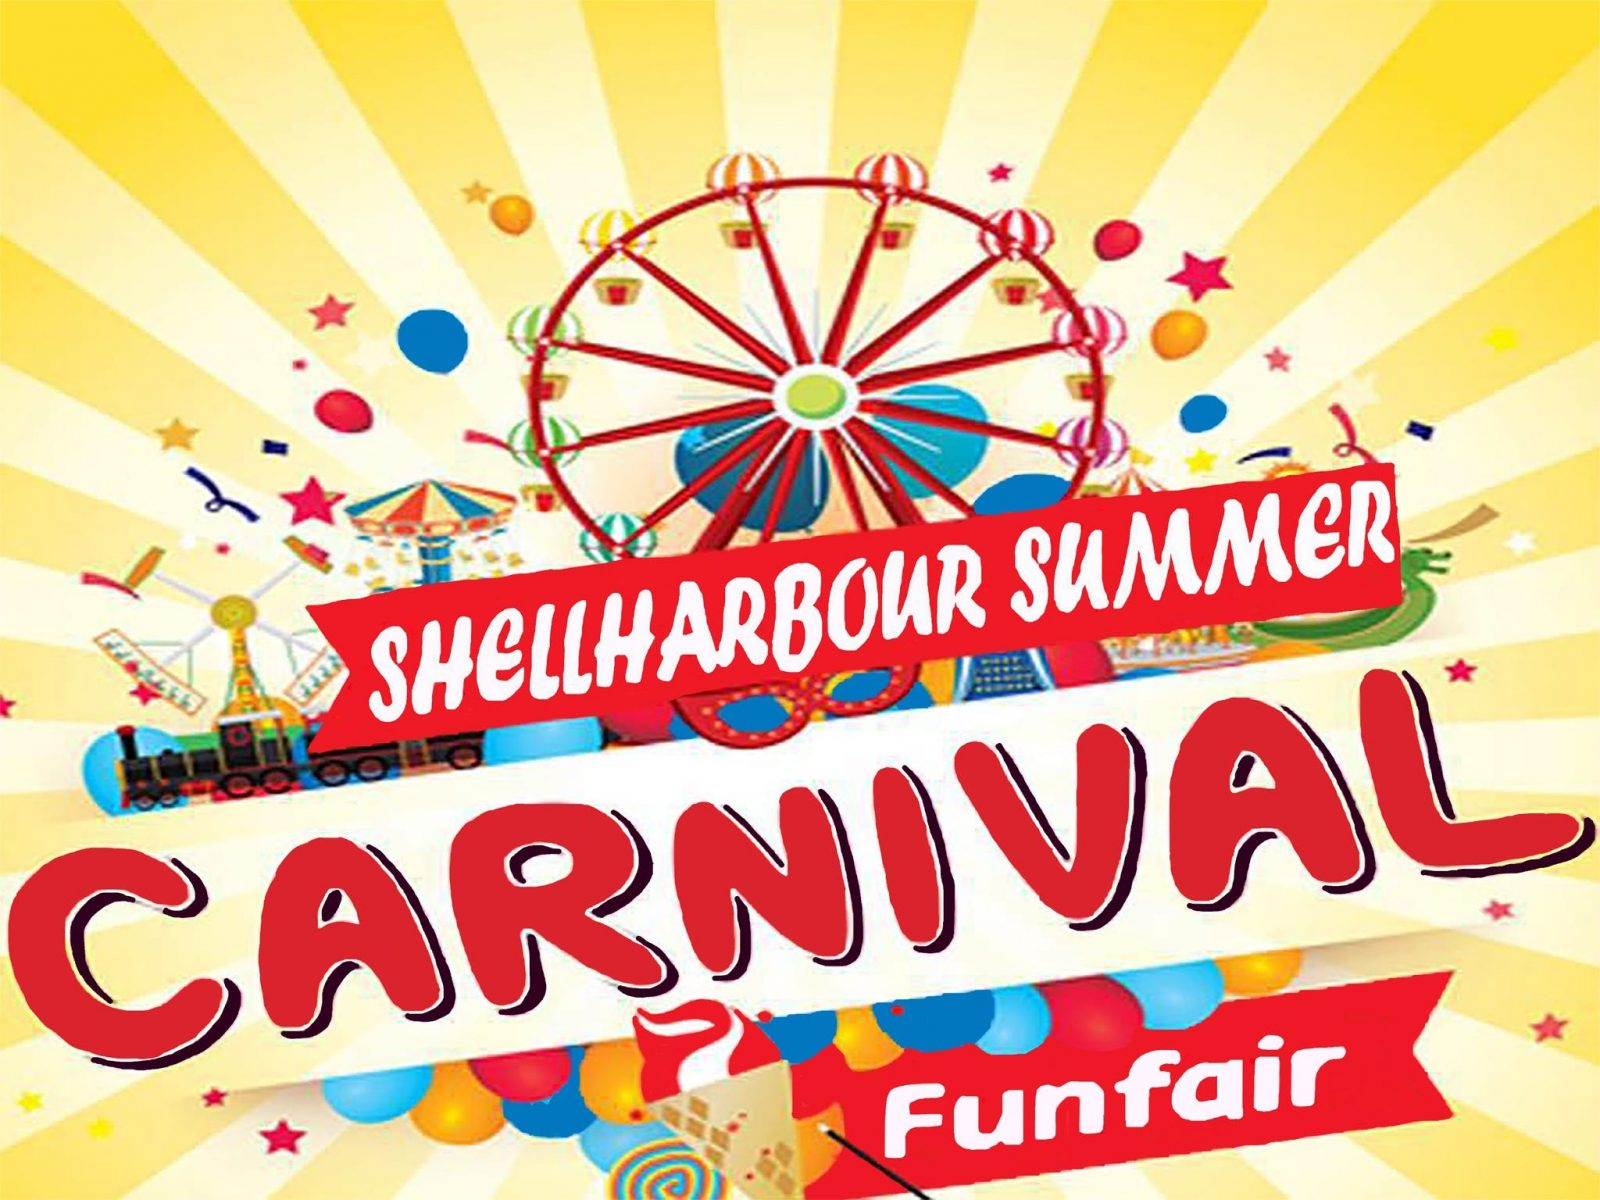 Shellharbour Summer Carnival - Pioneer Park - 26/12/19 to 19/01/20 - Open nightly from 6.00pm